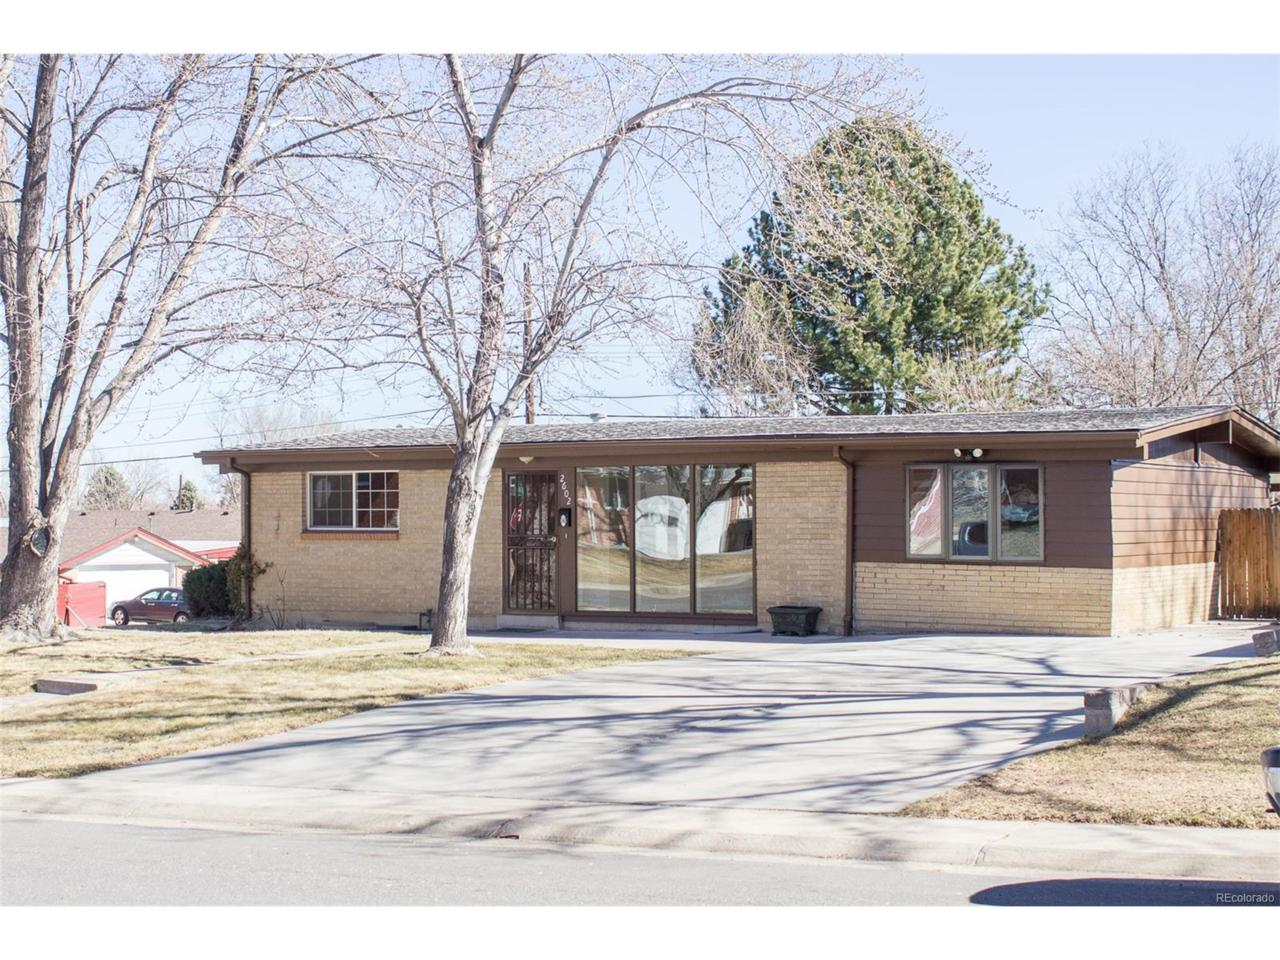 2602 S Quitman Street, Denver, CO 80219 (MLS #7938614) :: 8z Real Estate